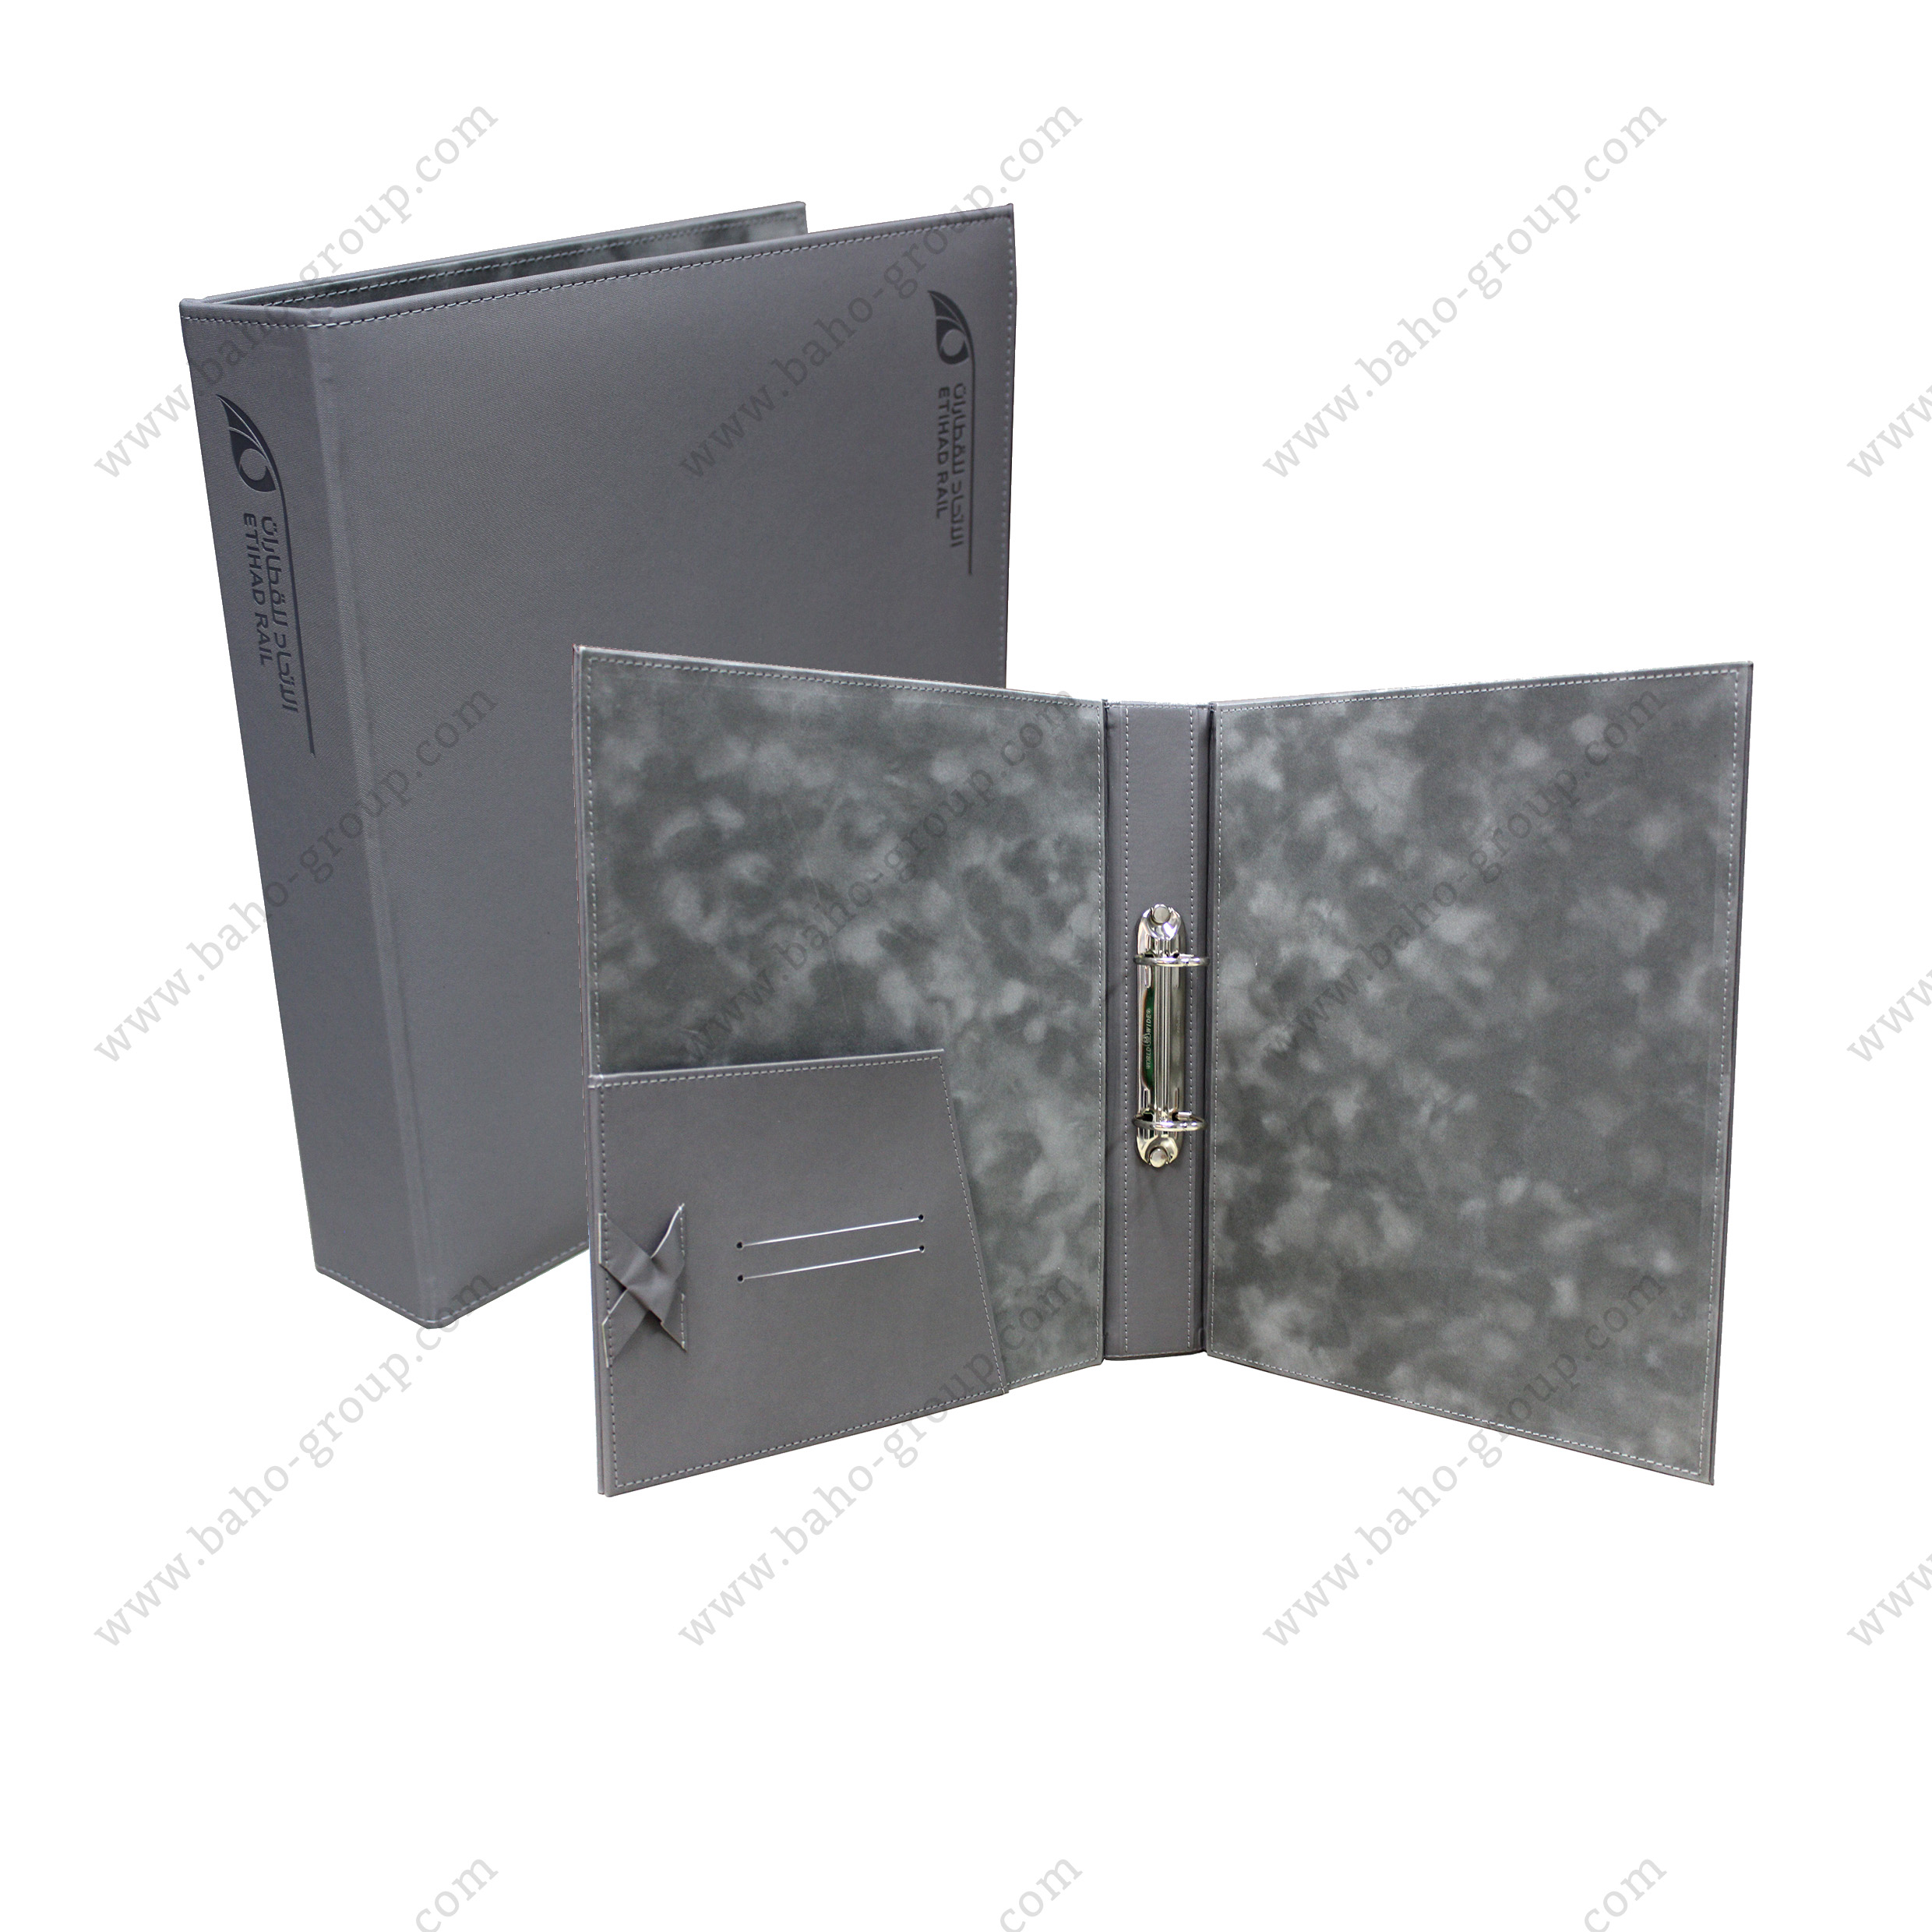 EtihadRail PU Leather Filing Folder